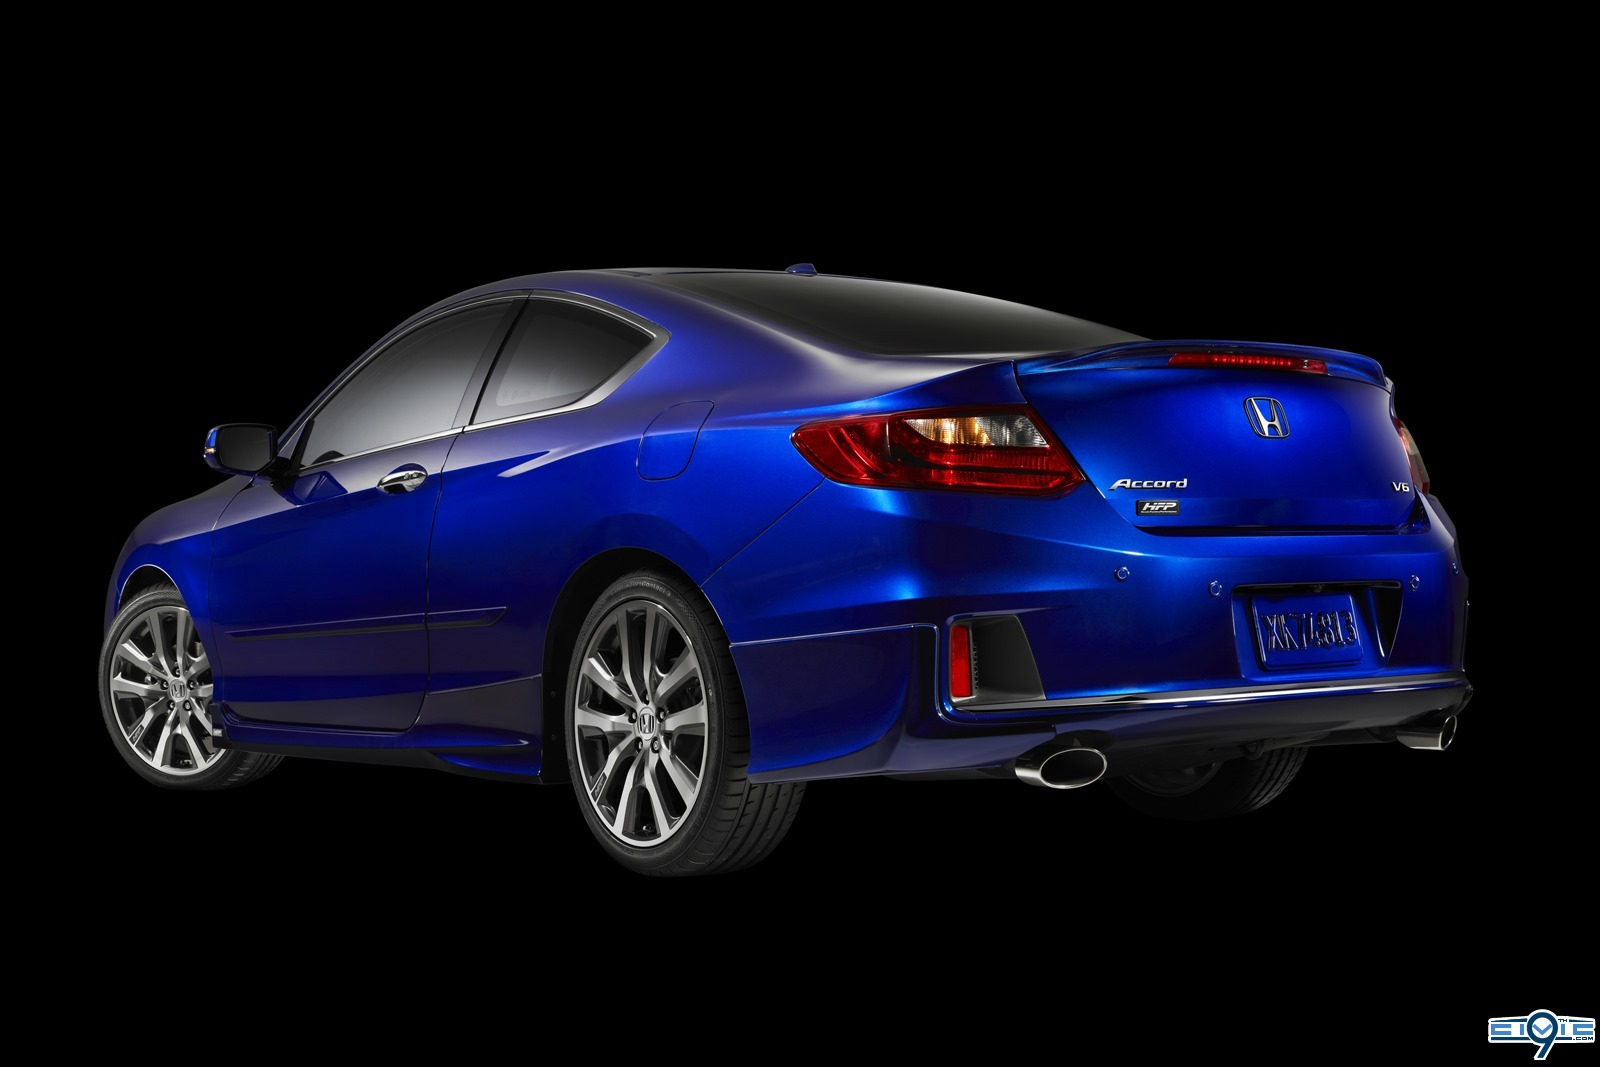 Limited edition hfp package for the 2013 accord coupe v6 for 2013 honda accord coupe v6 for sale